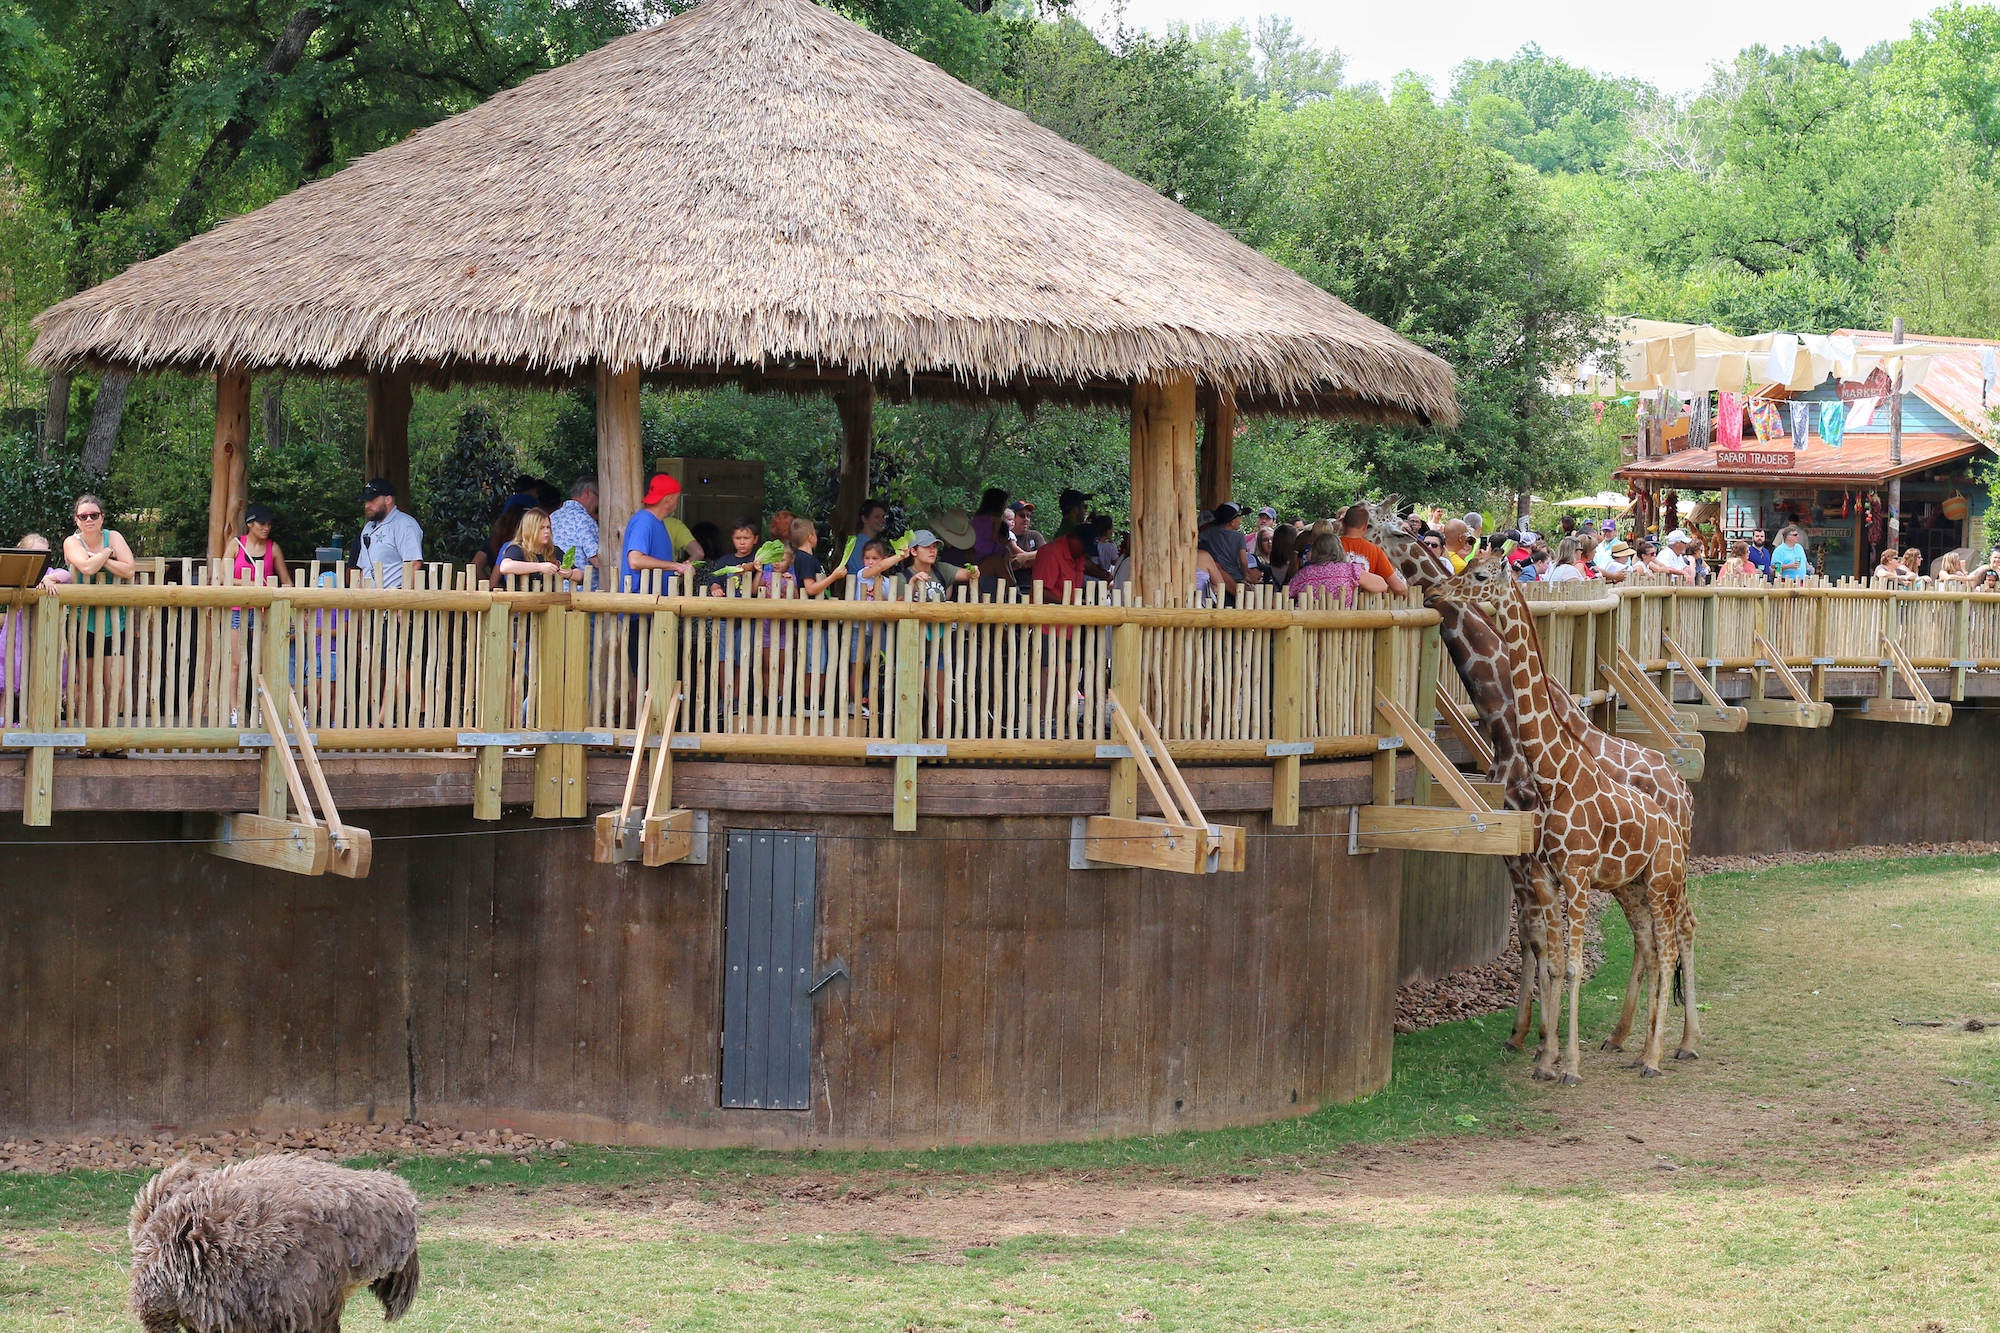 feed giraffes at African savanna at Fort Worth zoo